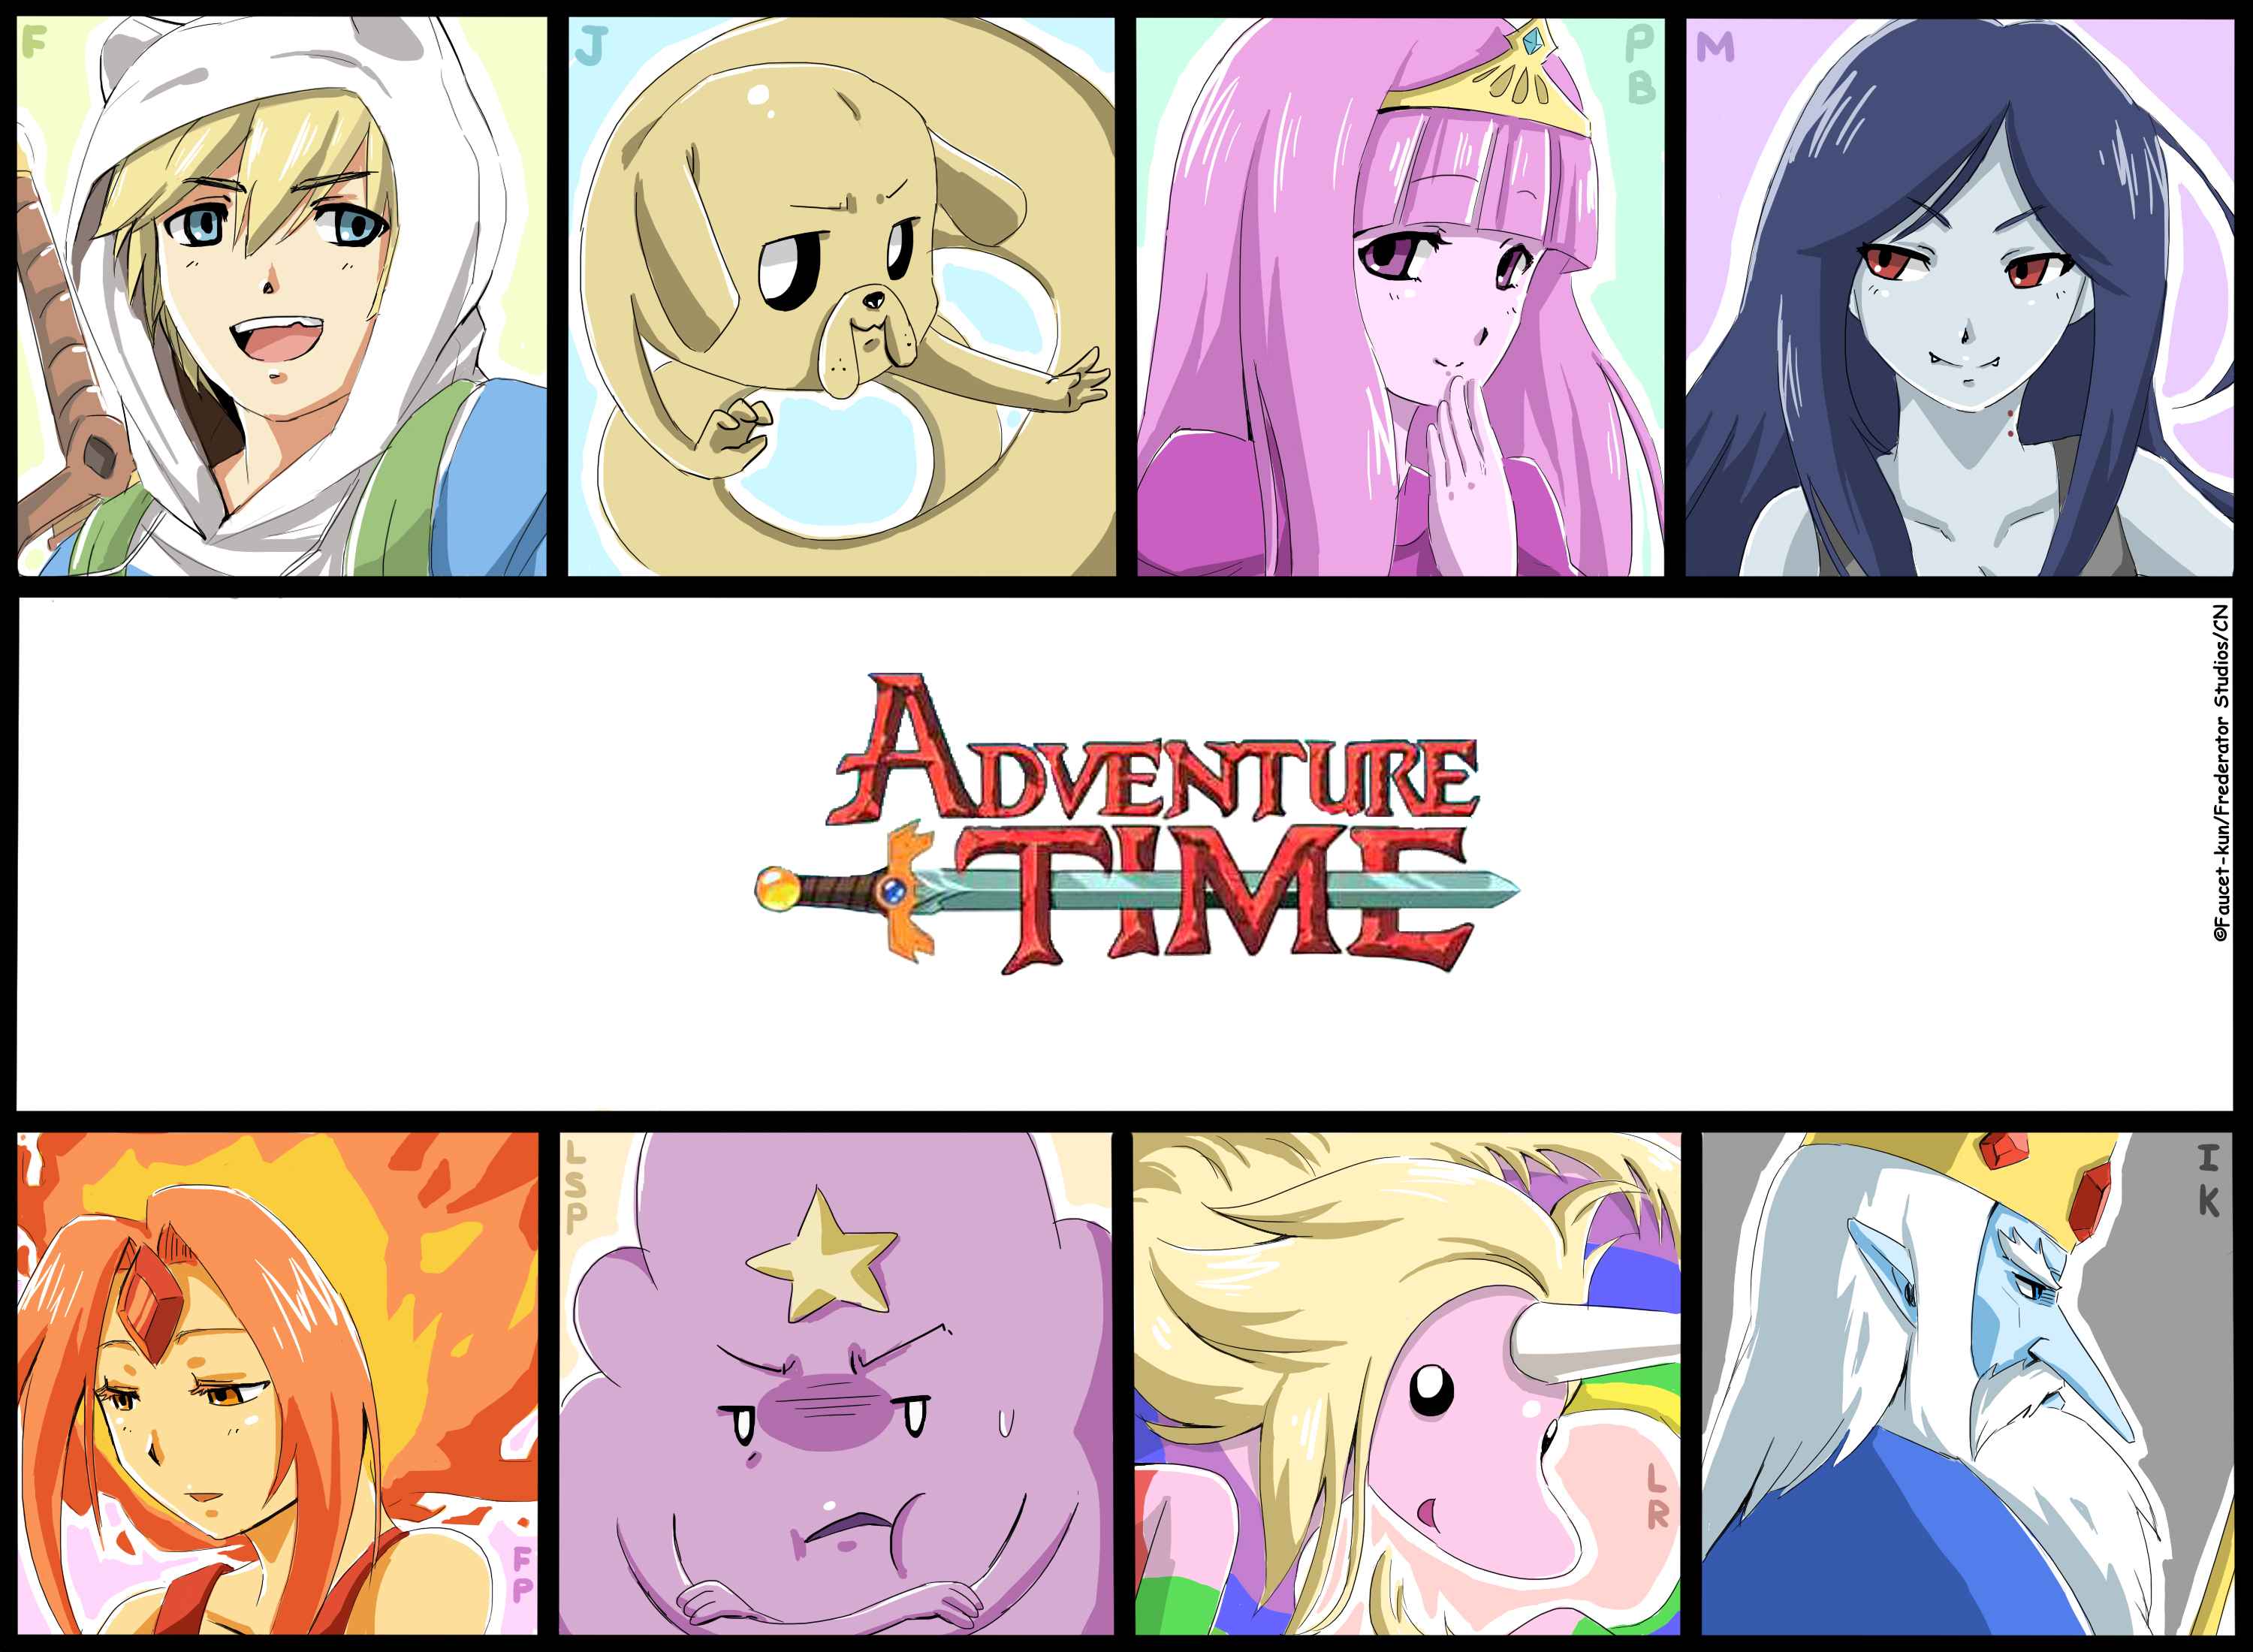 adventure time image 1091788 zerochan anime image board